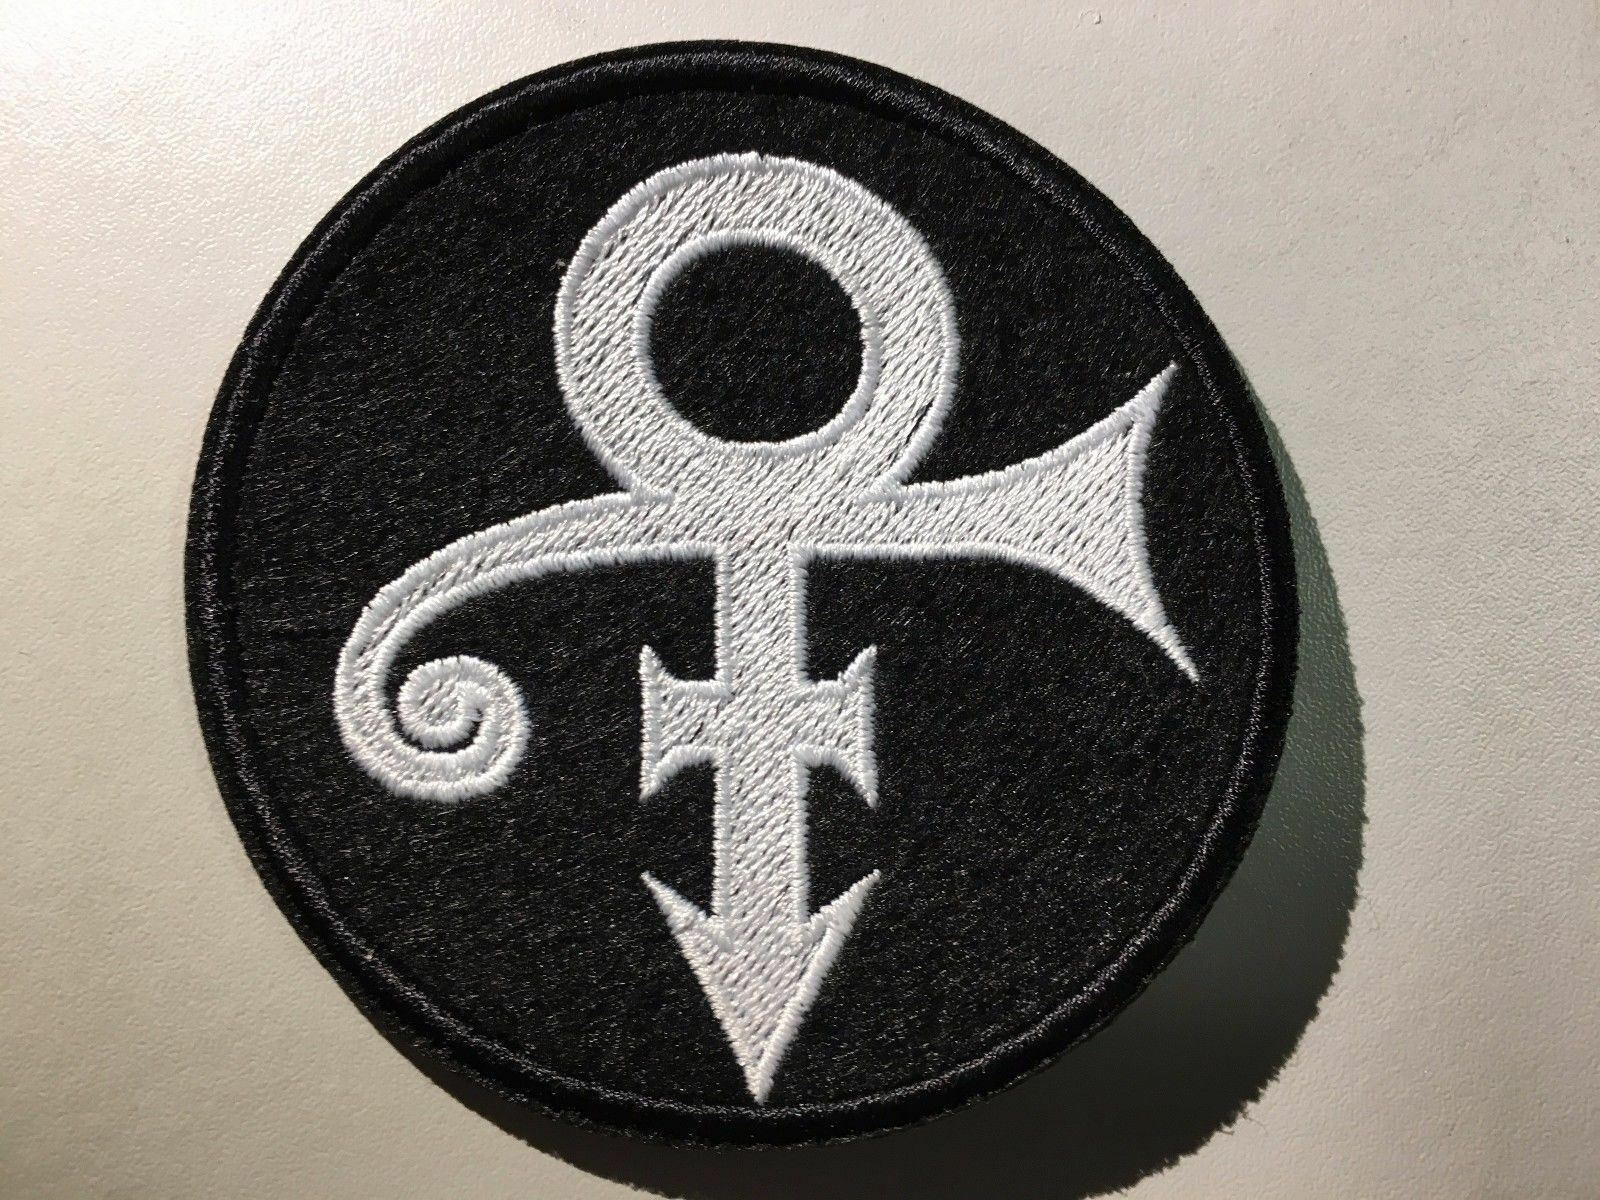 Prince The Artist Love Symbol Logo Patch Embroidered Iron On Patch